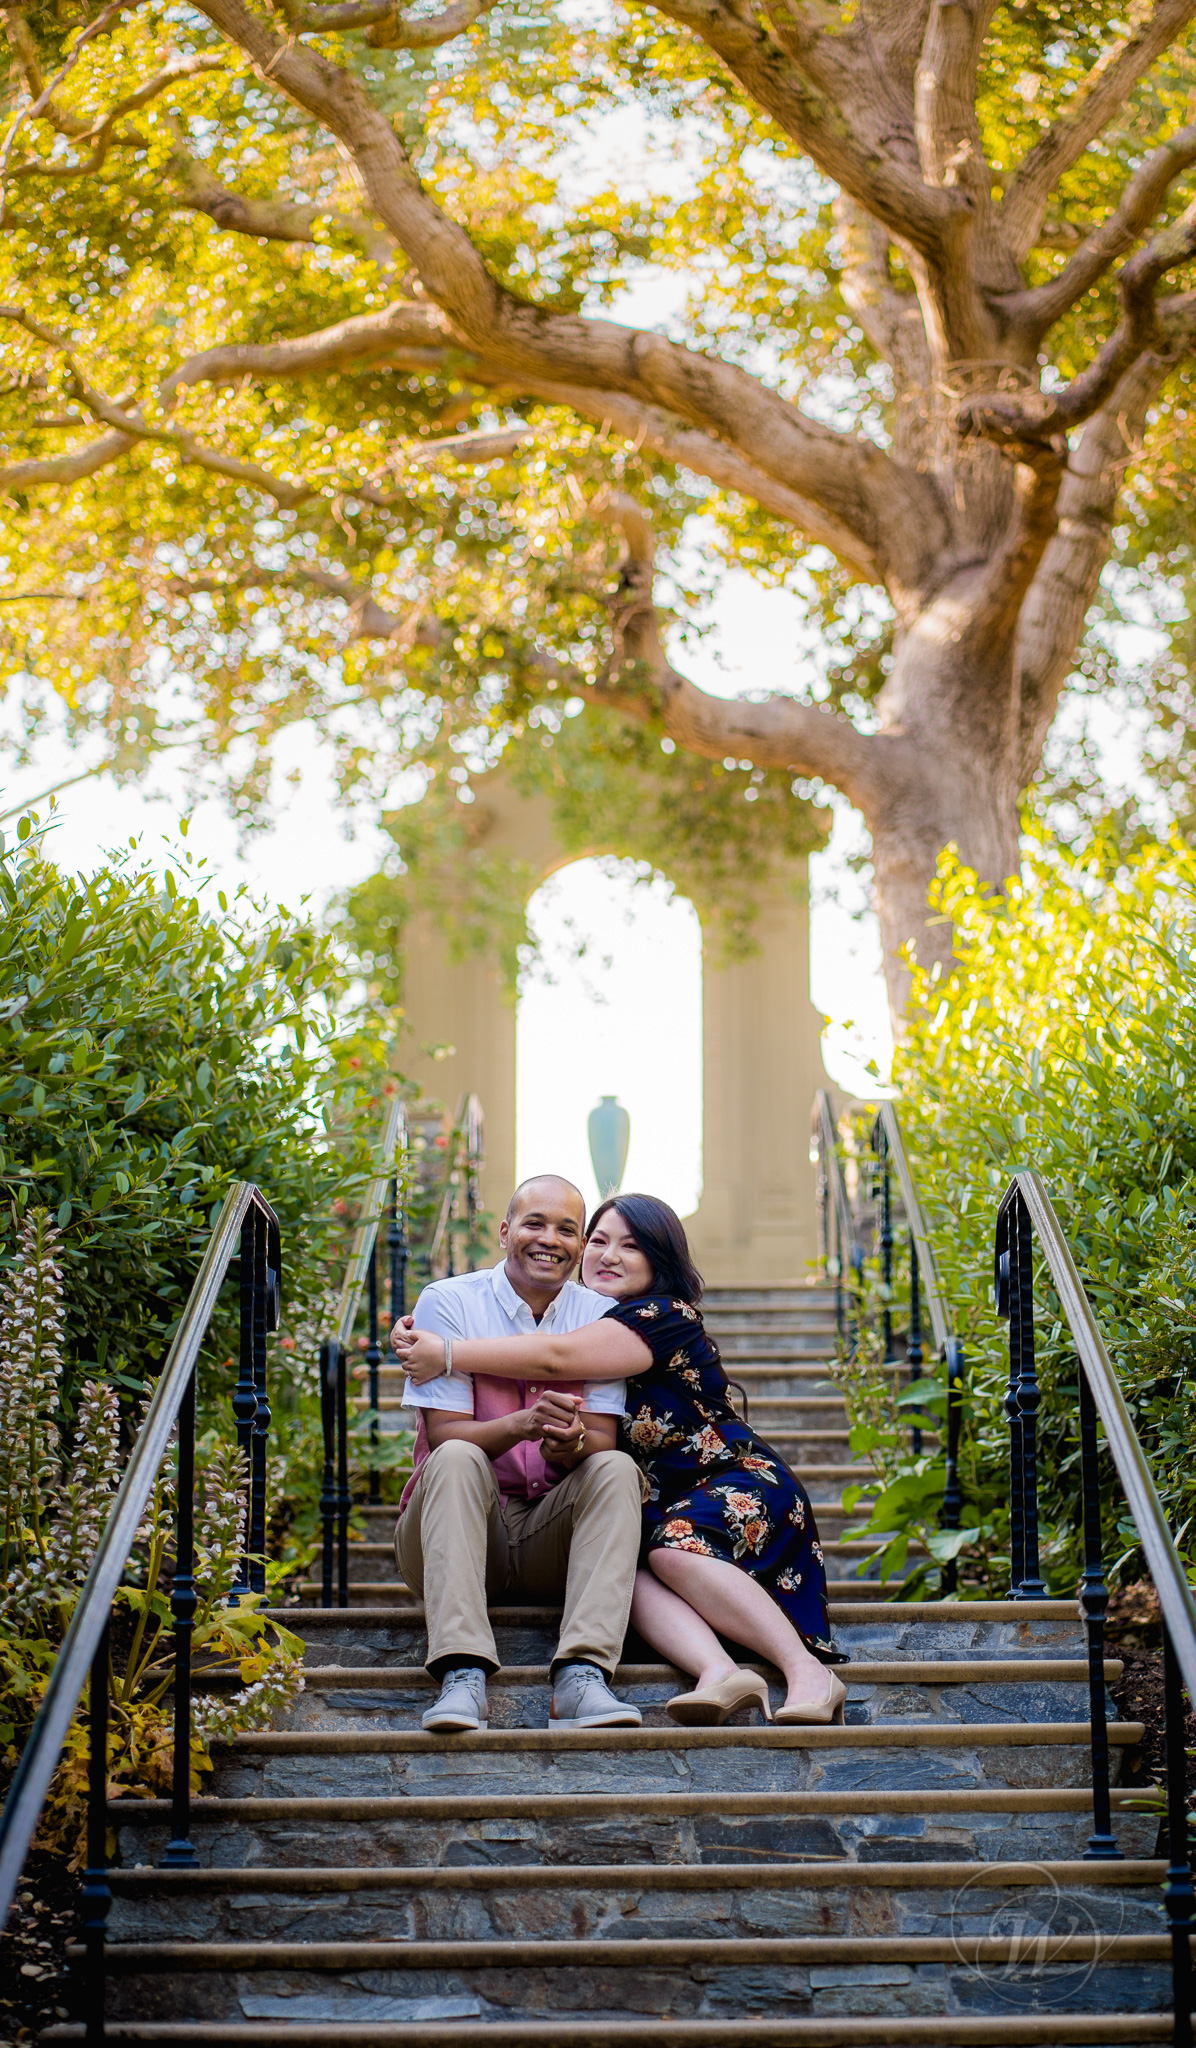 2019.06.16_Mosara-Brandon_Engagement_14.jpg